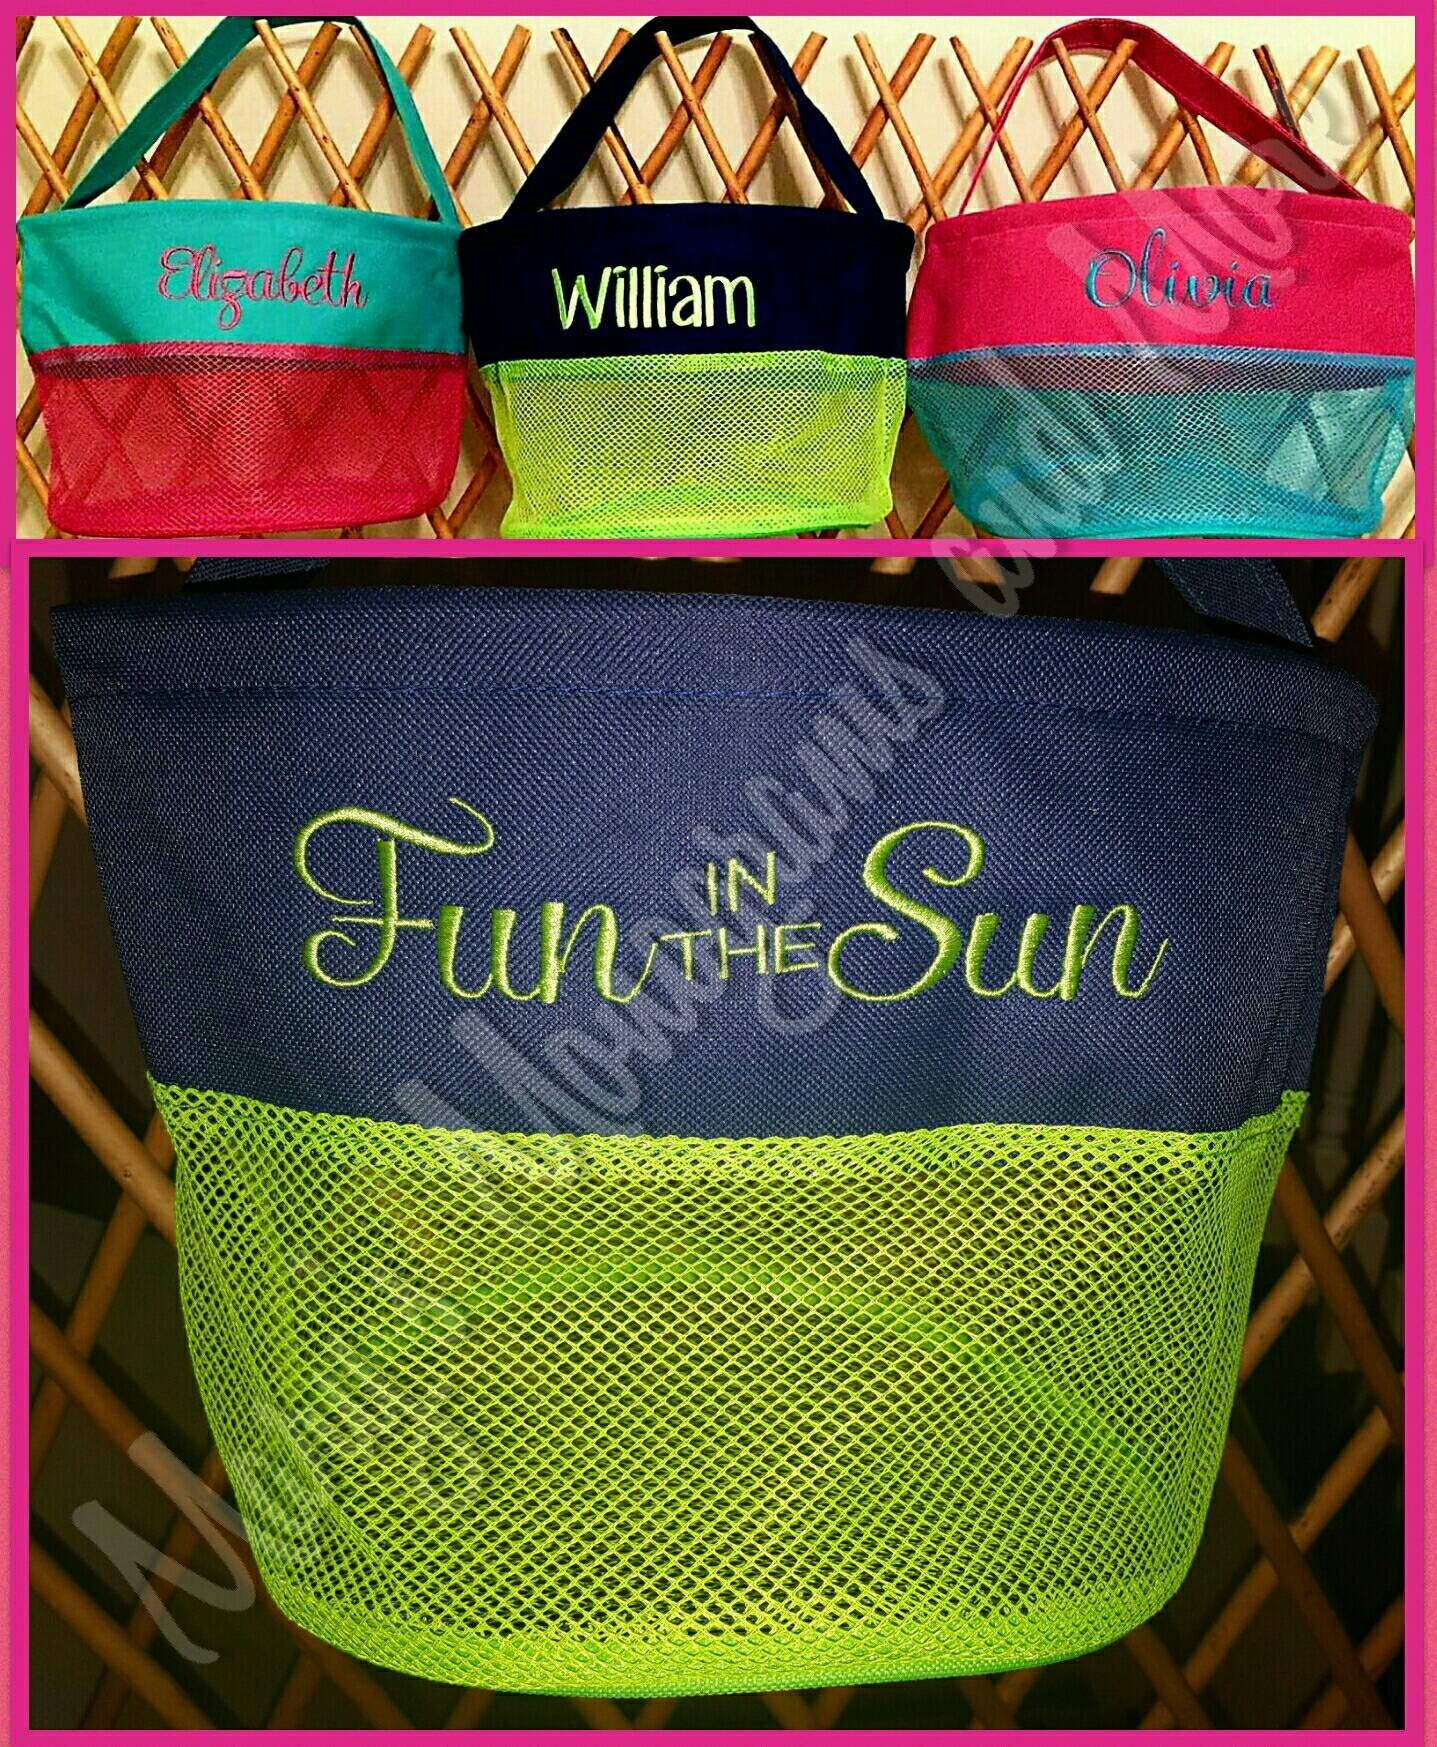 FREE SHIPPING - Embroidery Personalized Mesh Seashell Bucket - Monogrammed Shell Bag - Bath Toy Basket - Embroidered Pool Toy Carrier